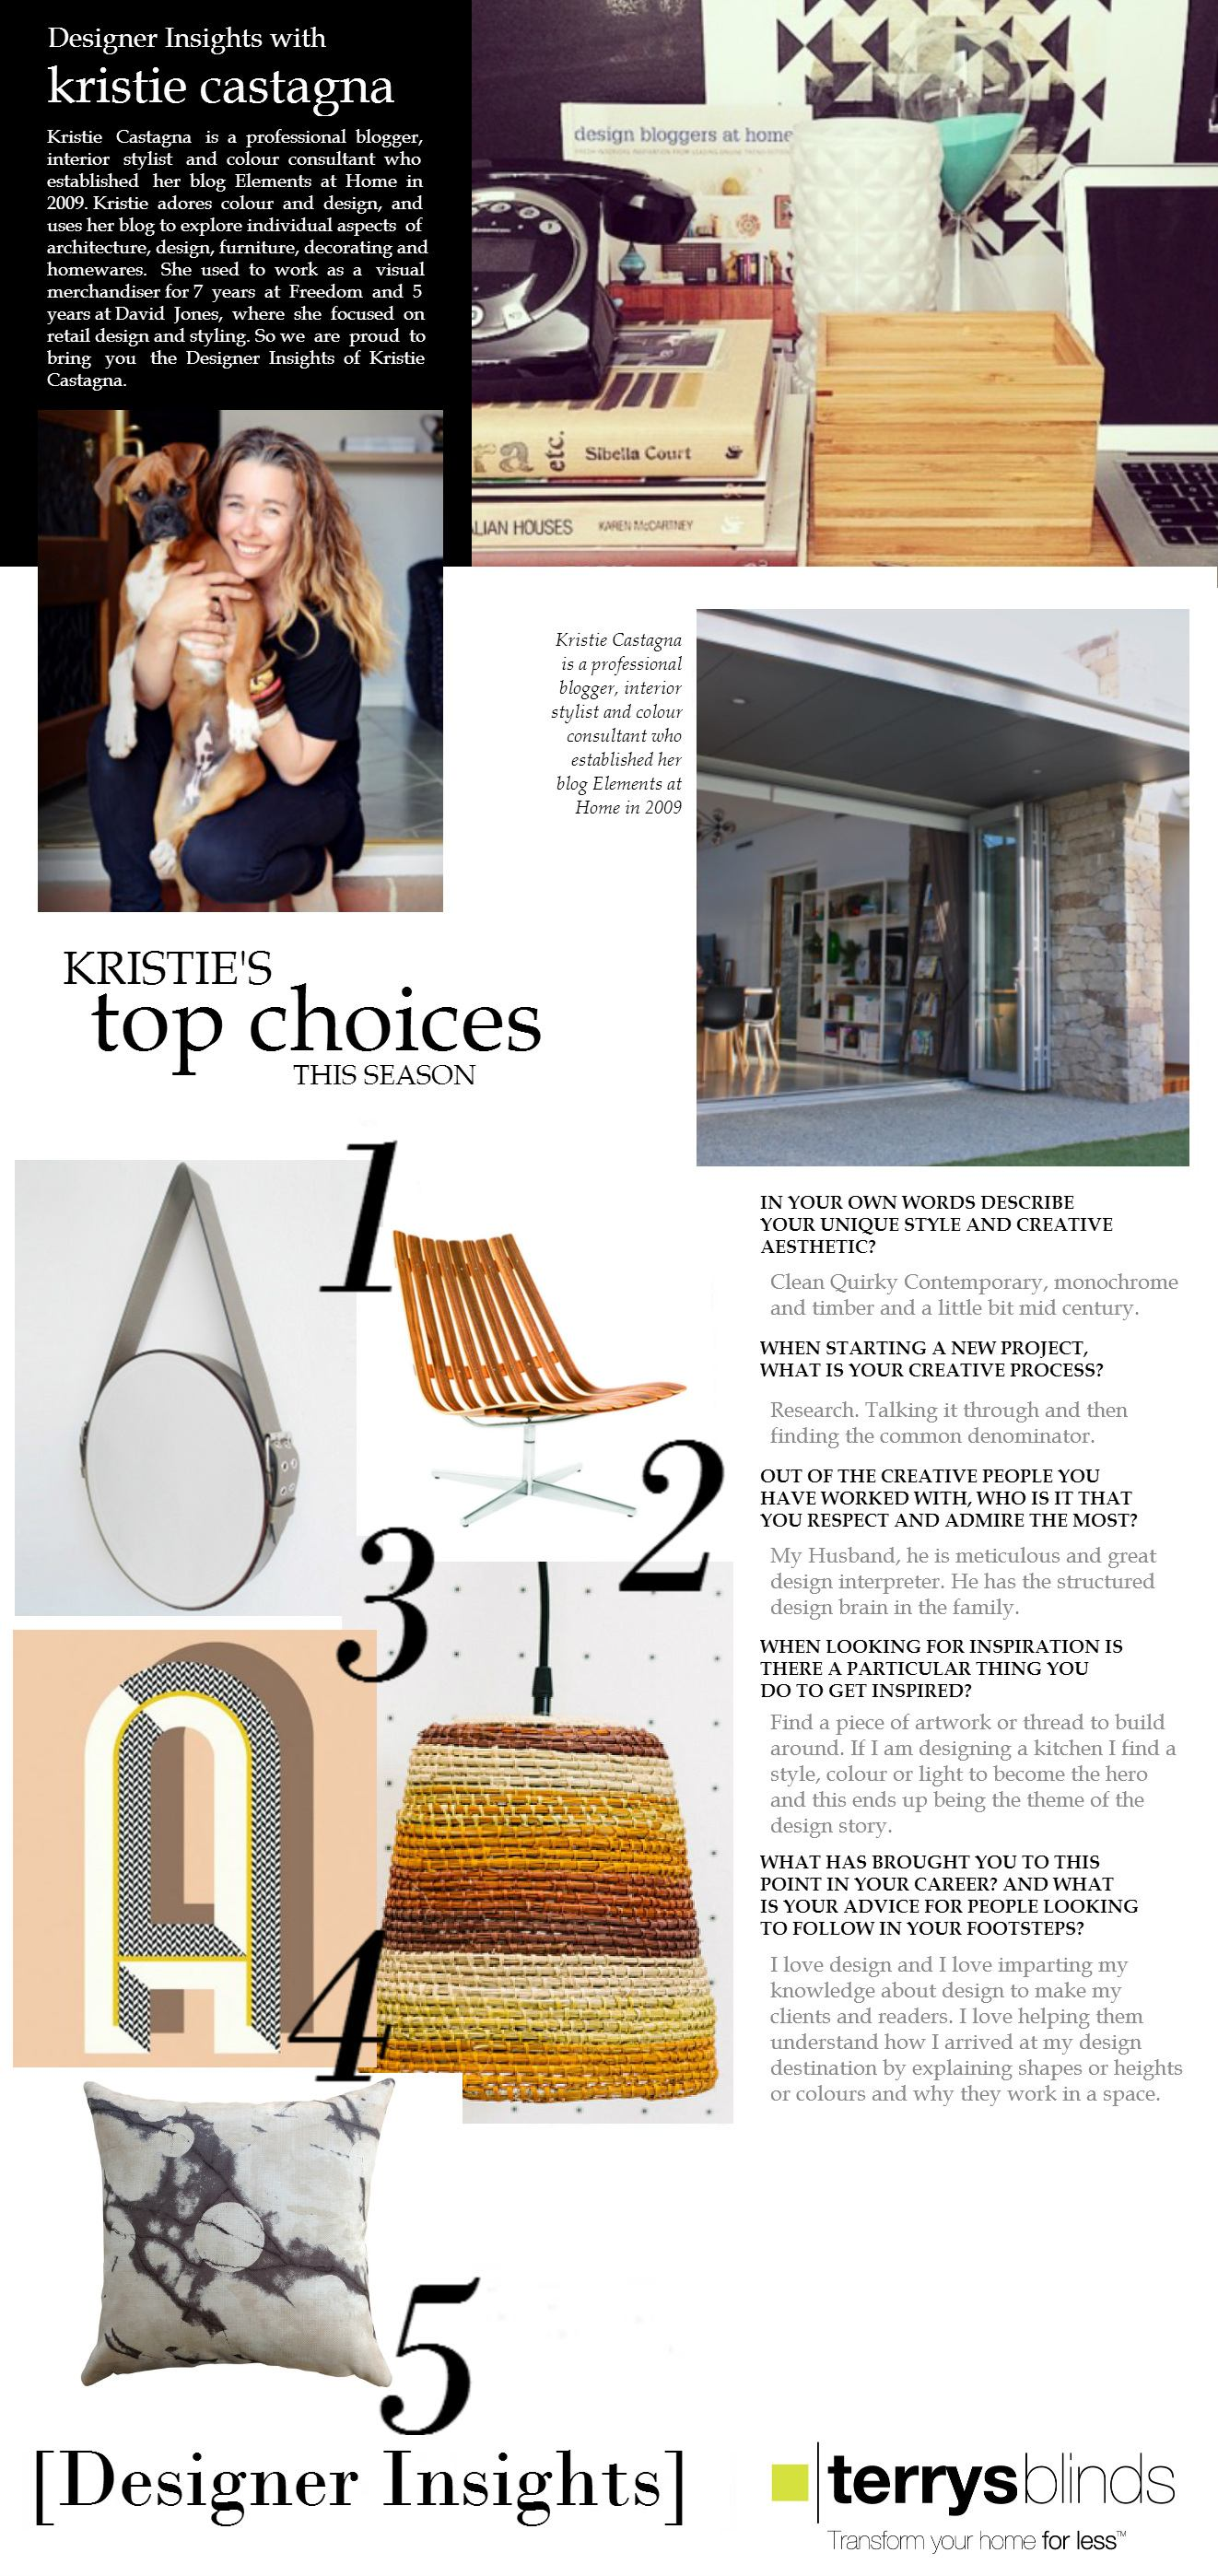 Design Insights - Kristie Castagna